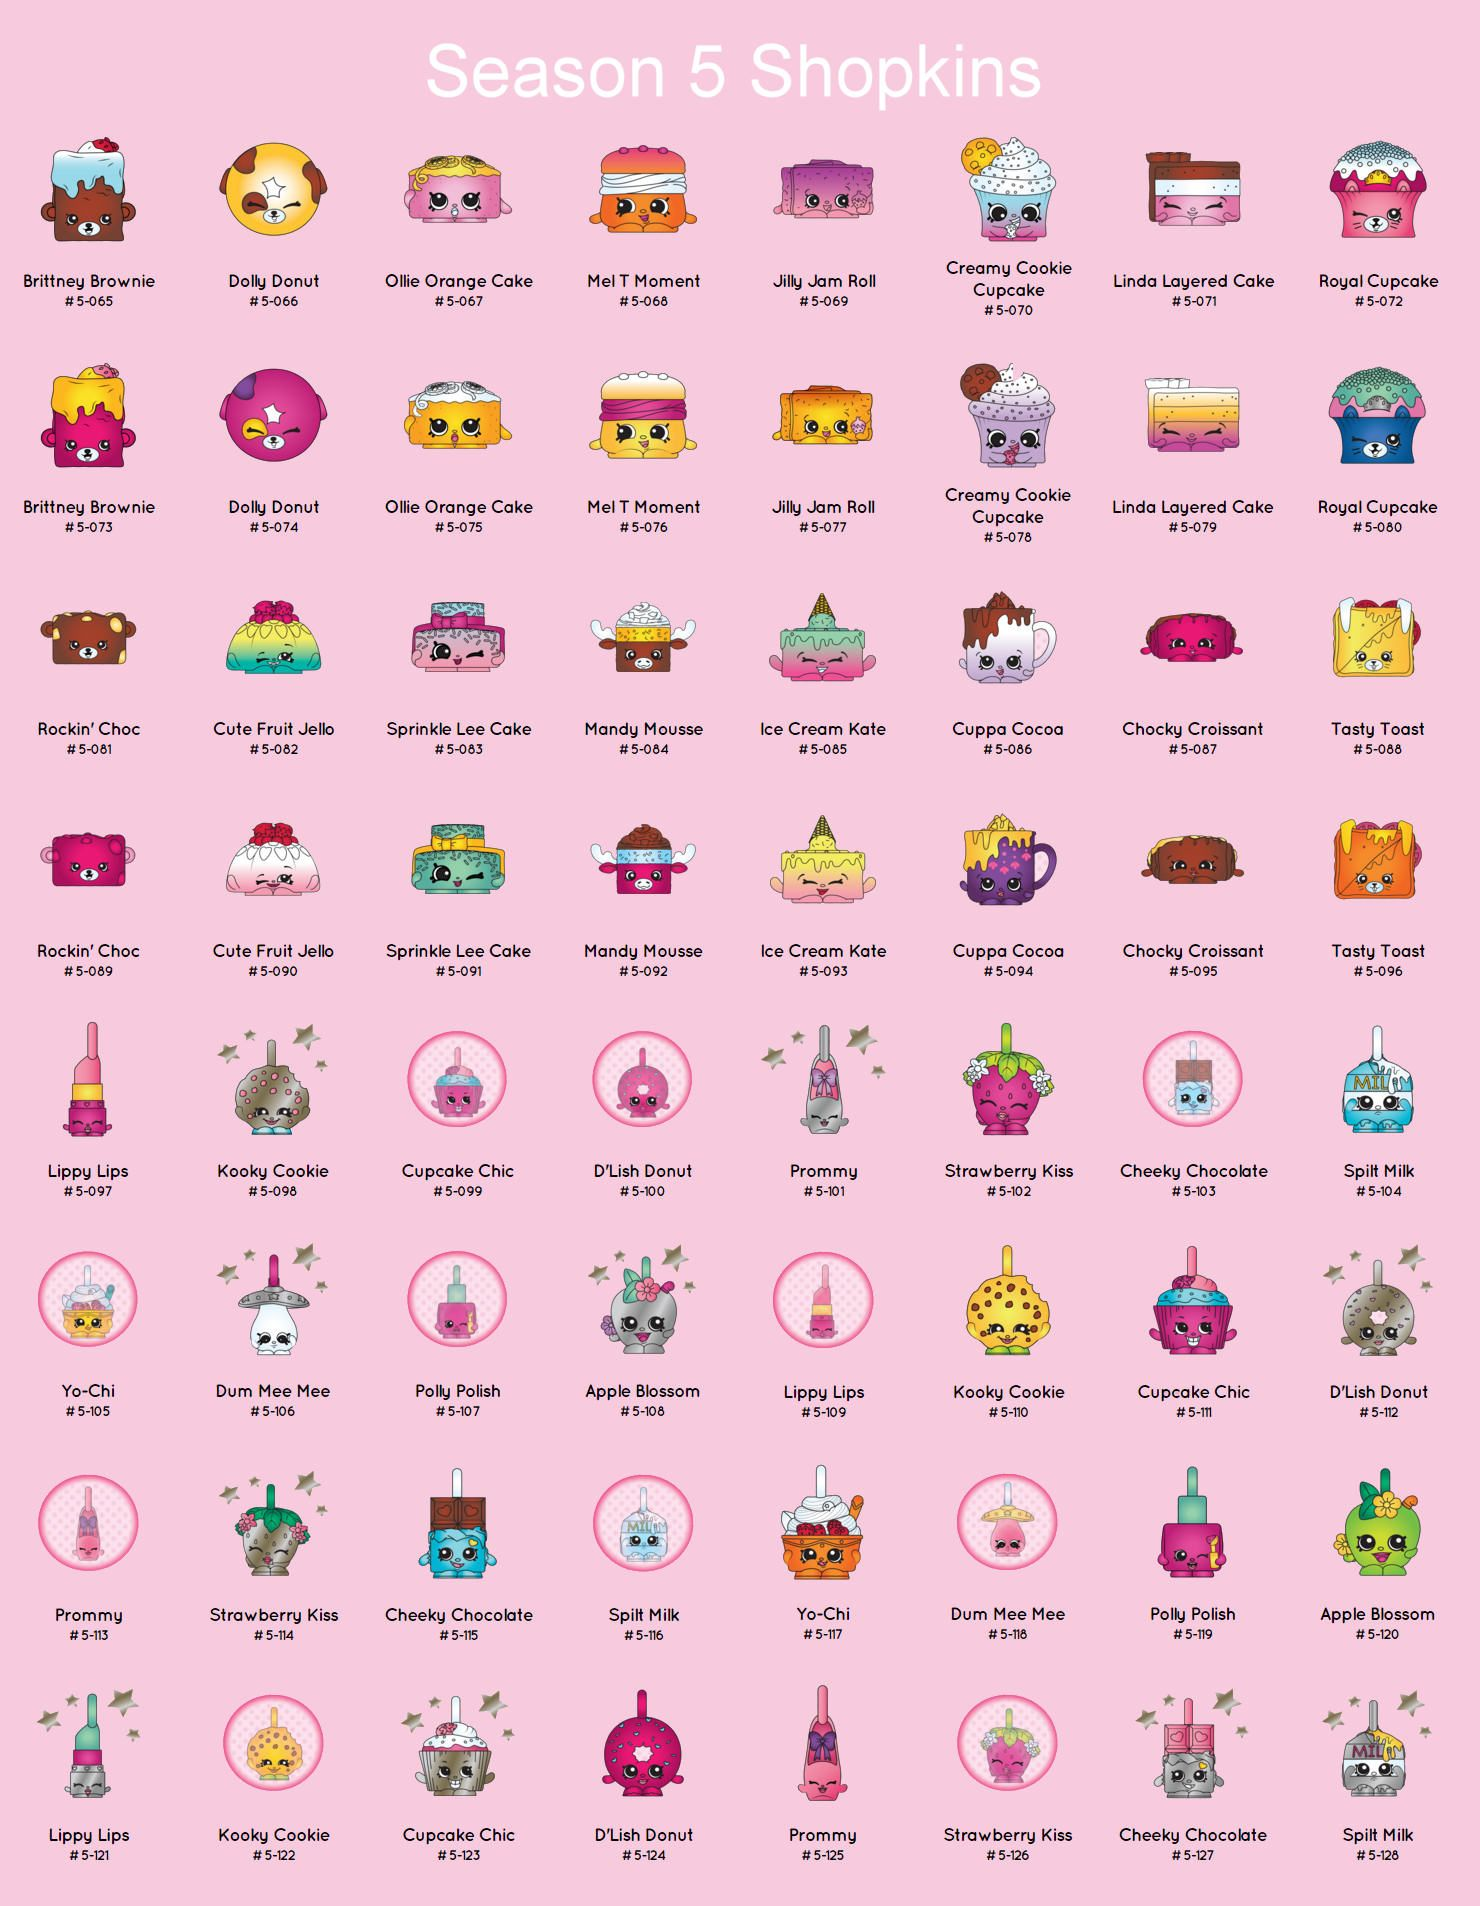 photograph about Printable Shopkins List called Shopkins Year 5 Printable Total Record Shopkins Keep an eye on Lists